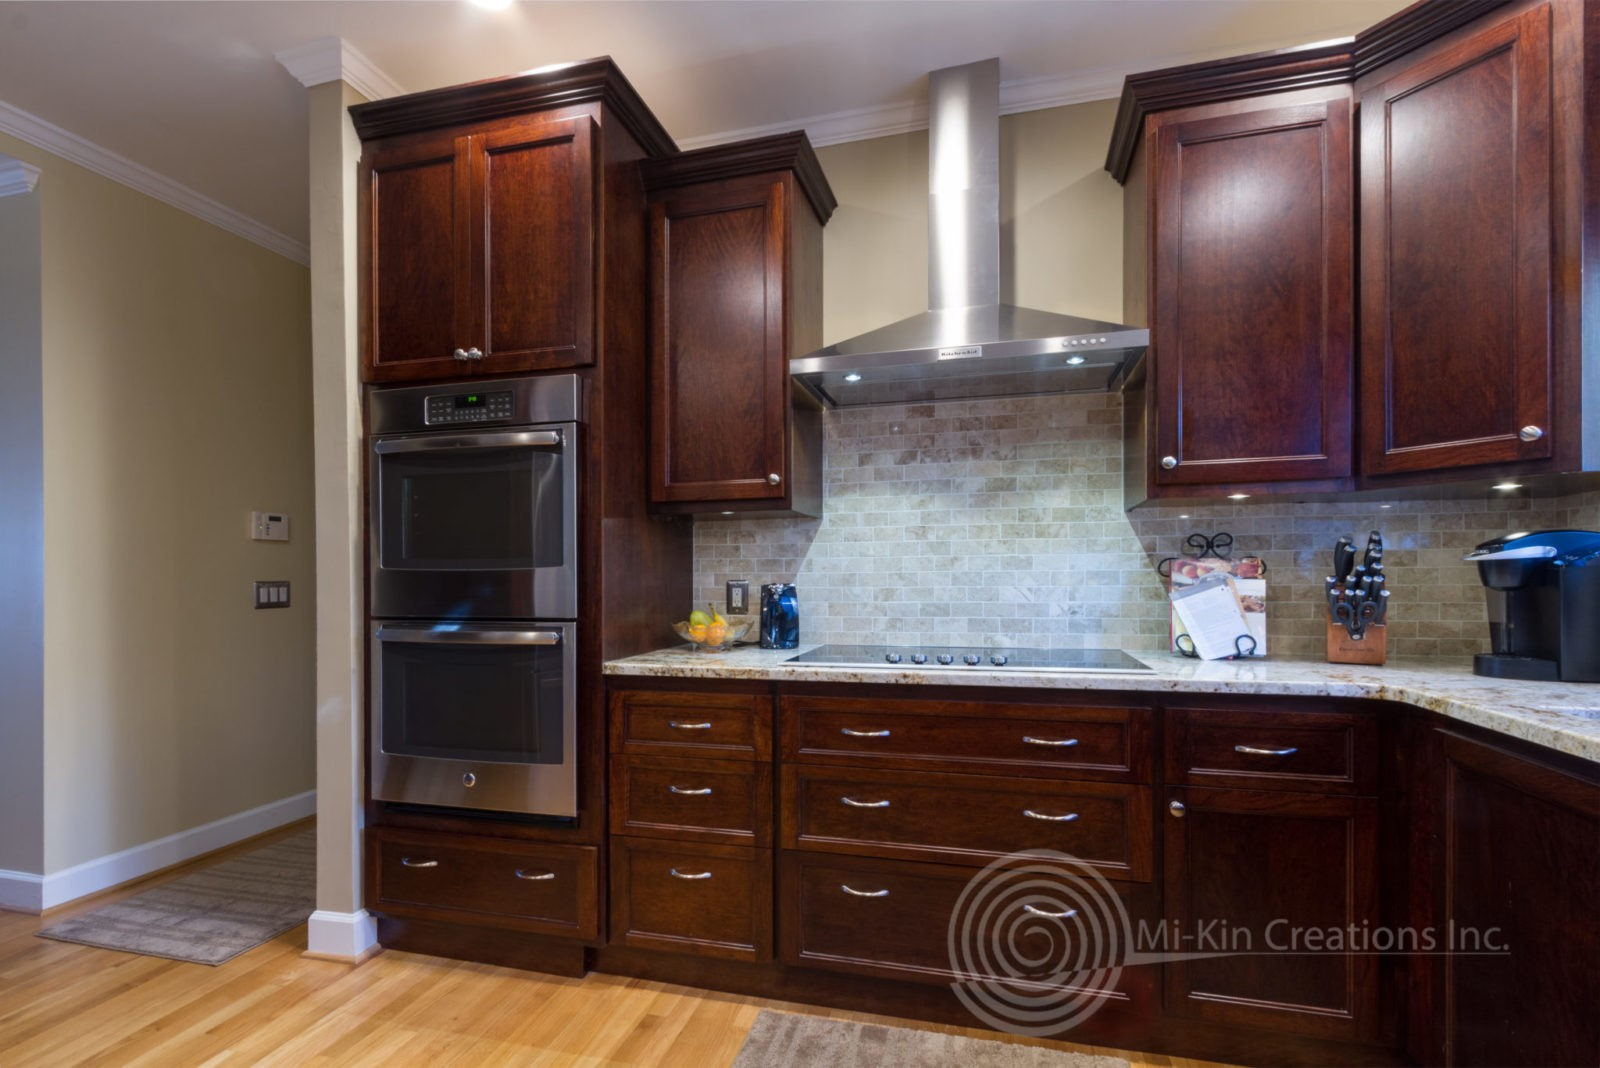 Traditional kitchen cabinets with range and vent hood.